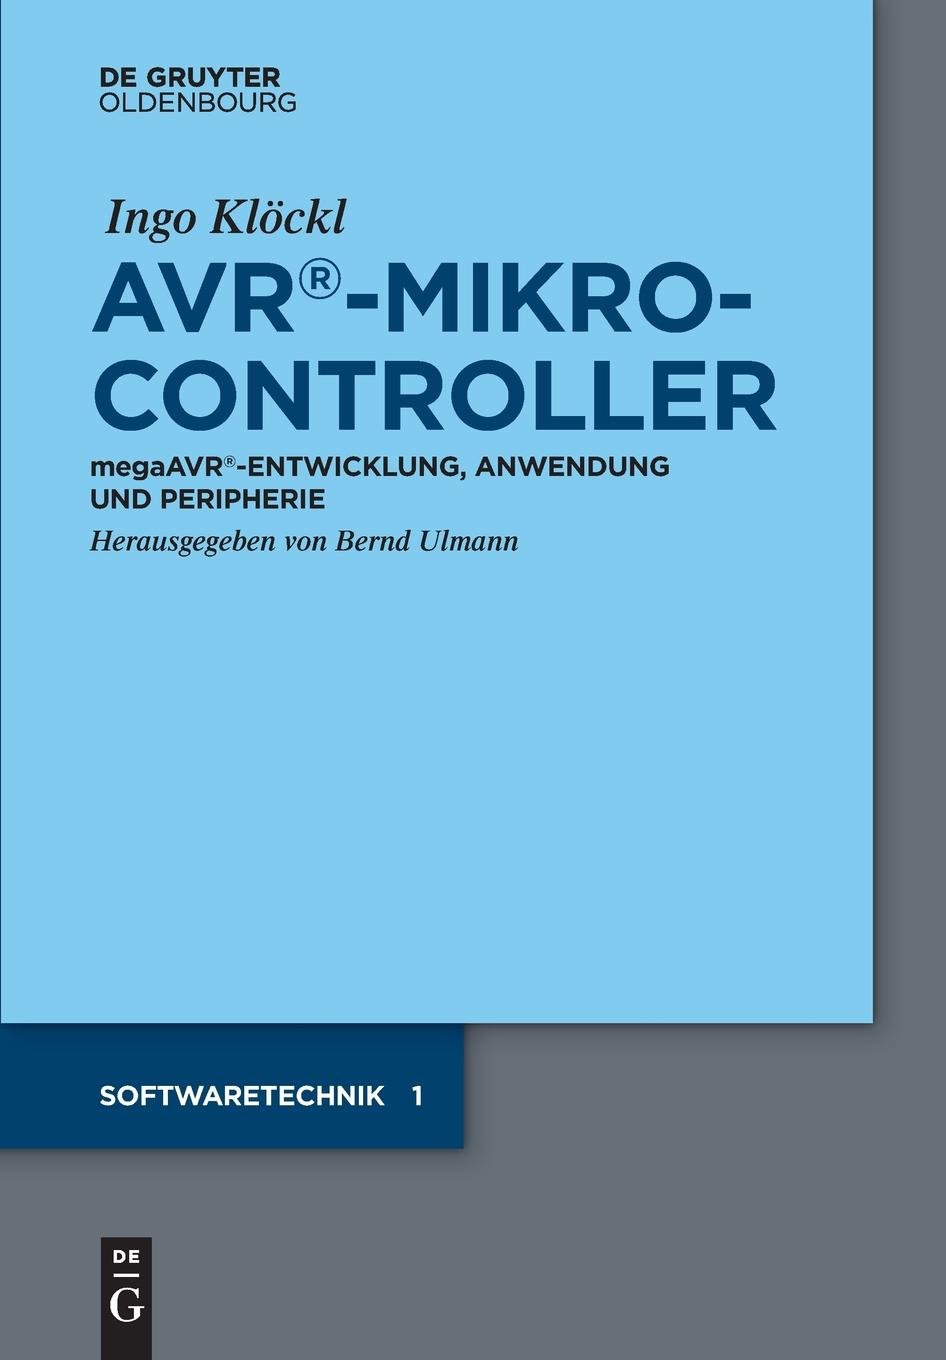 Avr Mikrocontroller (Softwaretechnik)